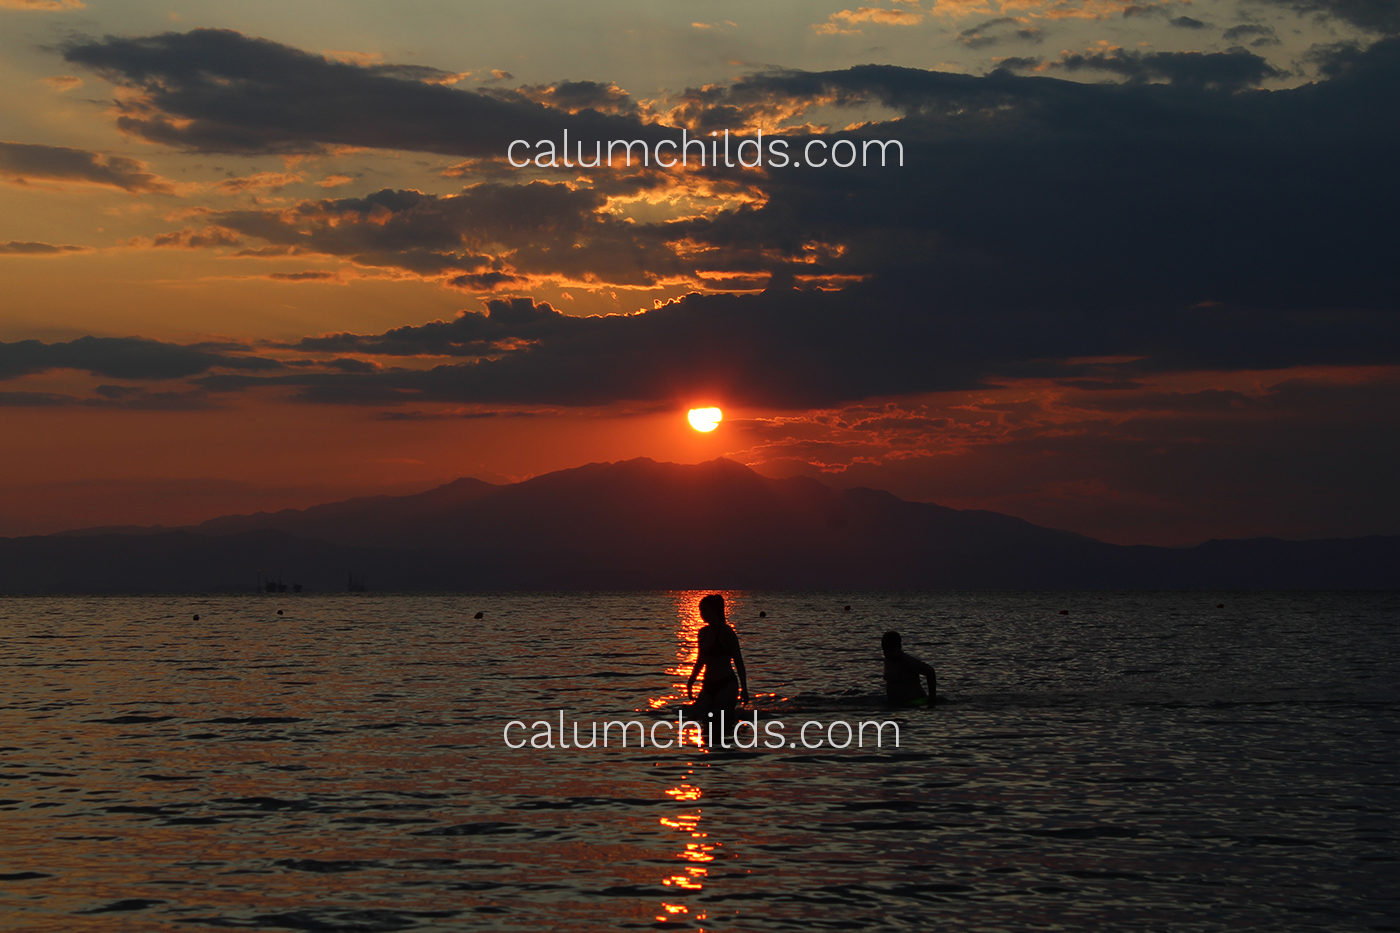 A person walks through the orange beam the sun is creating on the sea, surrounded by large mountains.